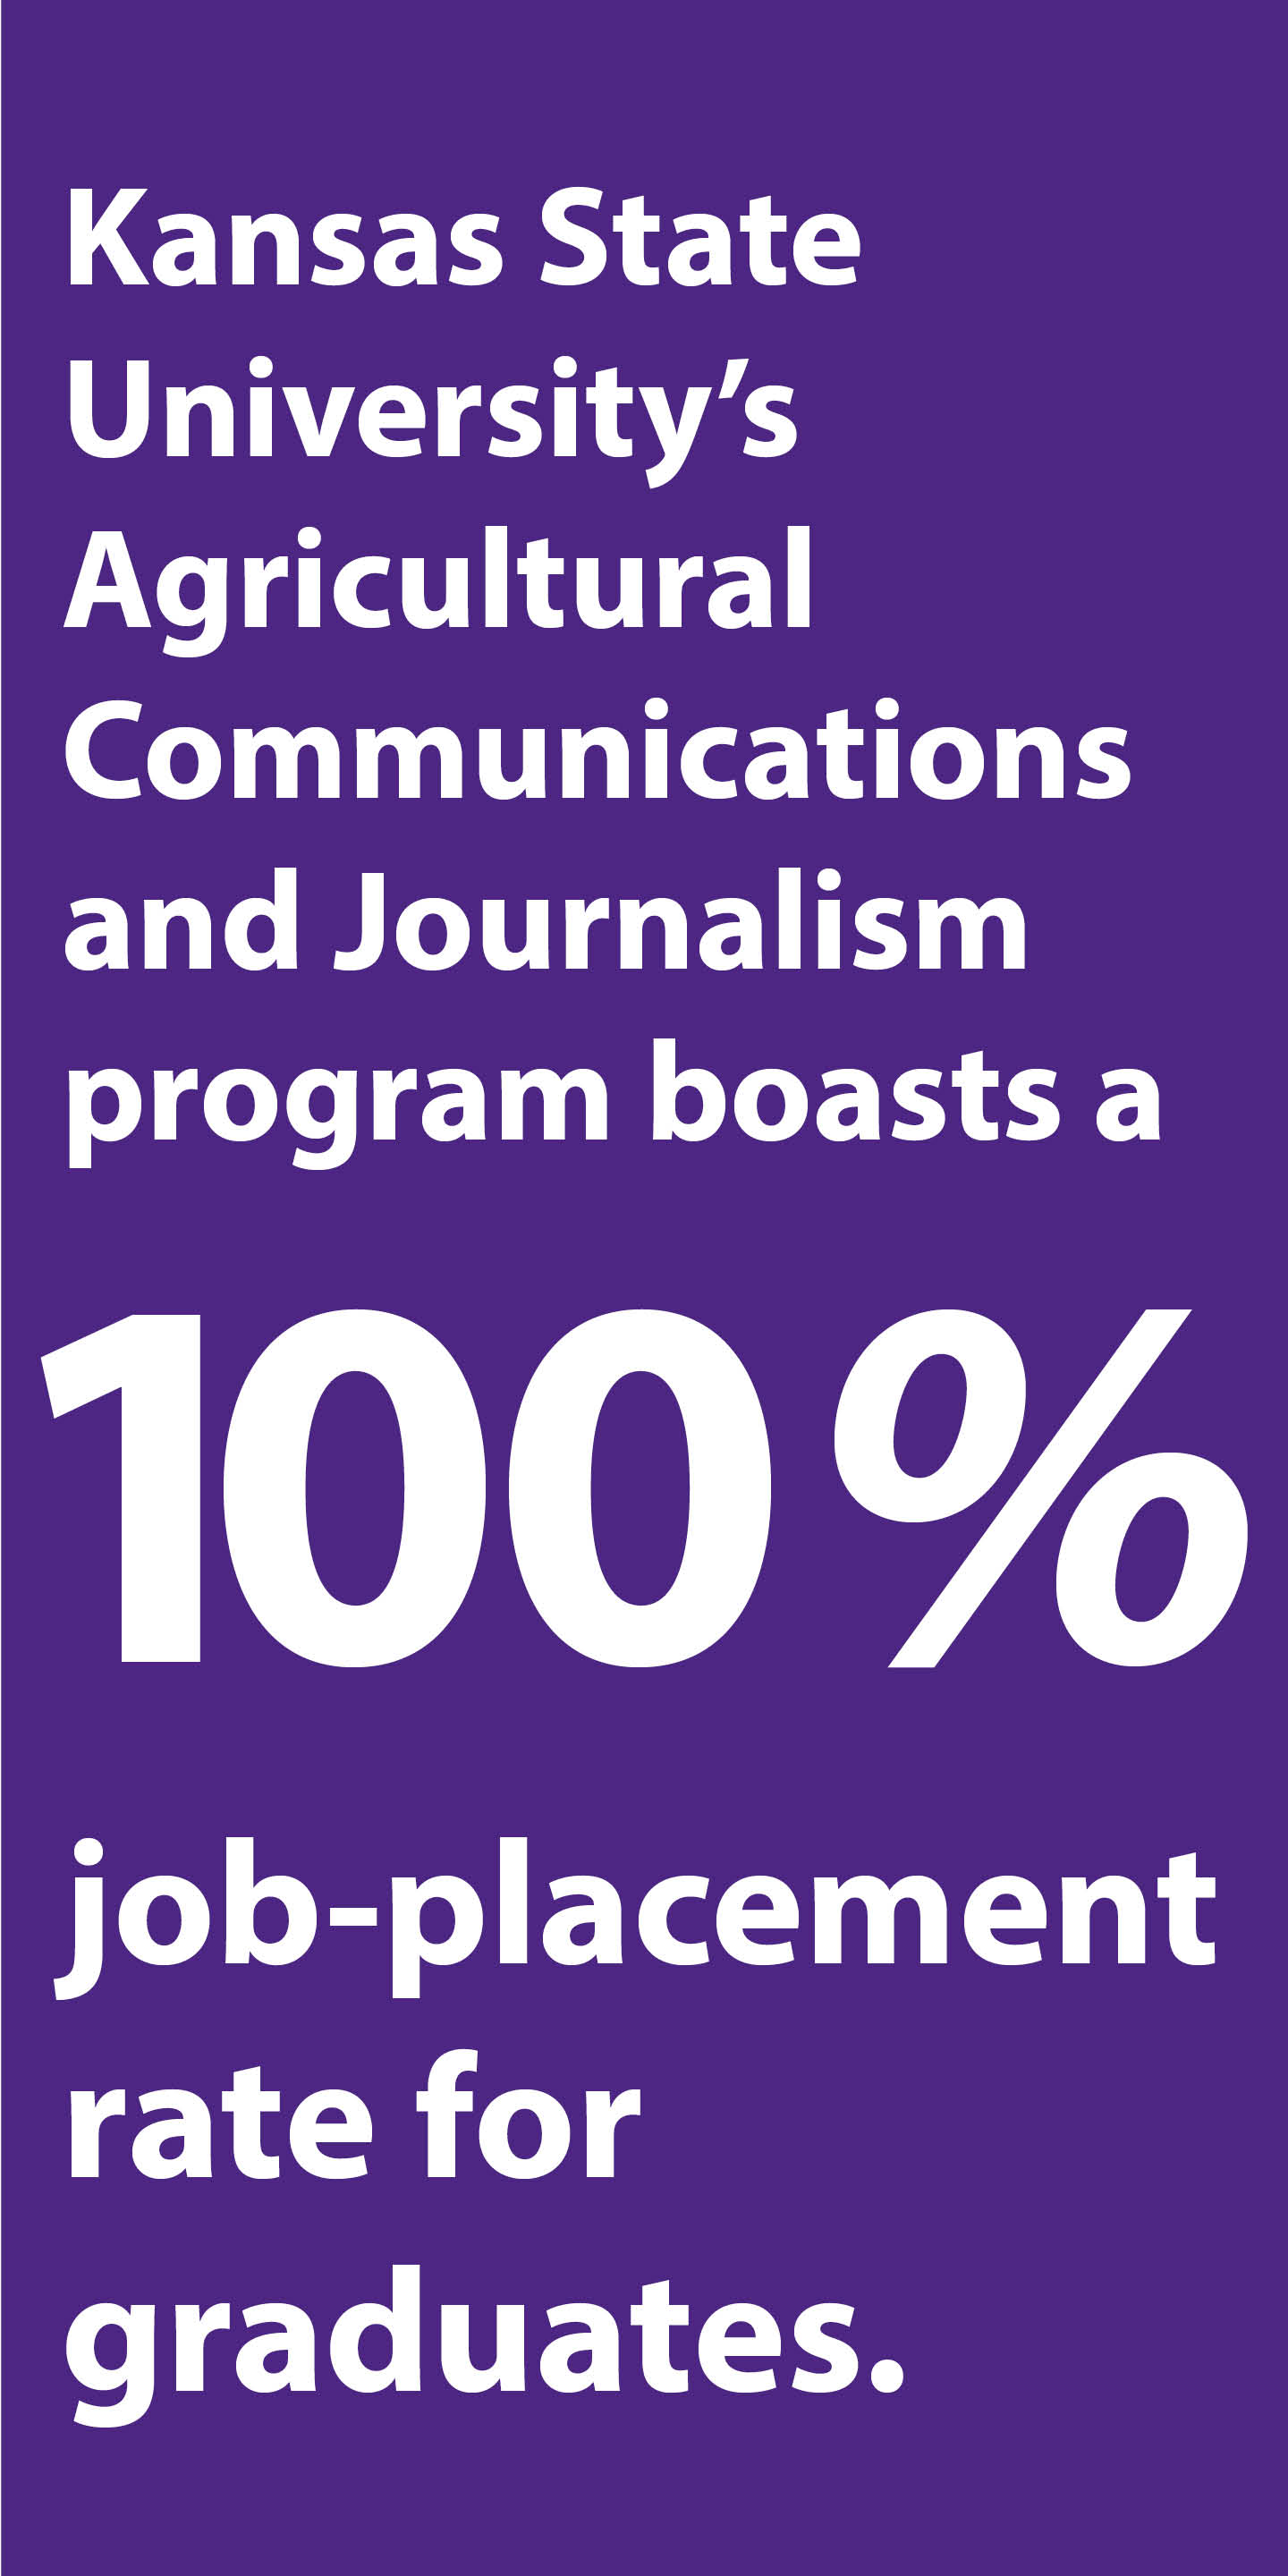 Kansas State's Agricultural Communications and Journalism Program boasts a 100% job-placement rate for graduates.